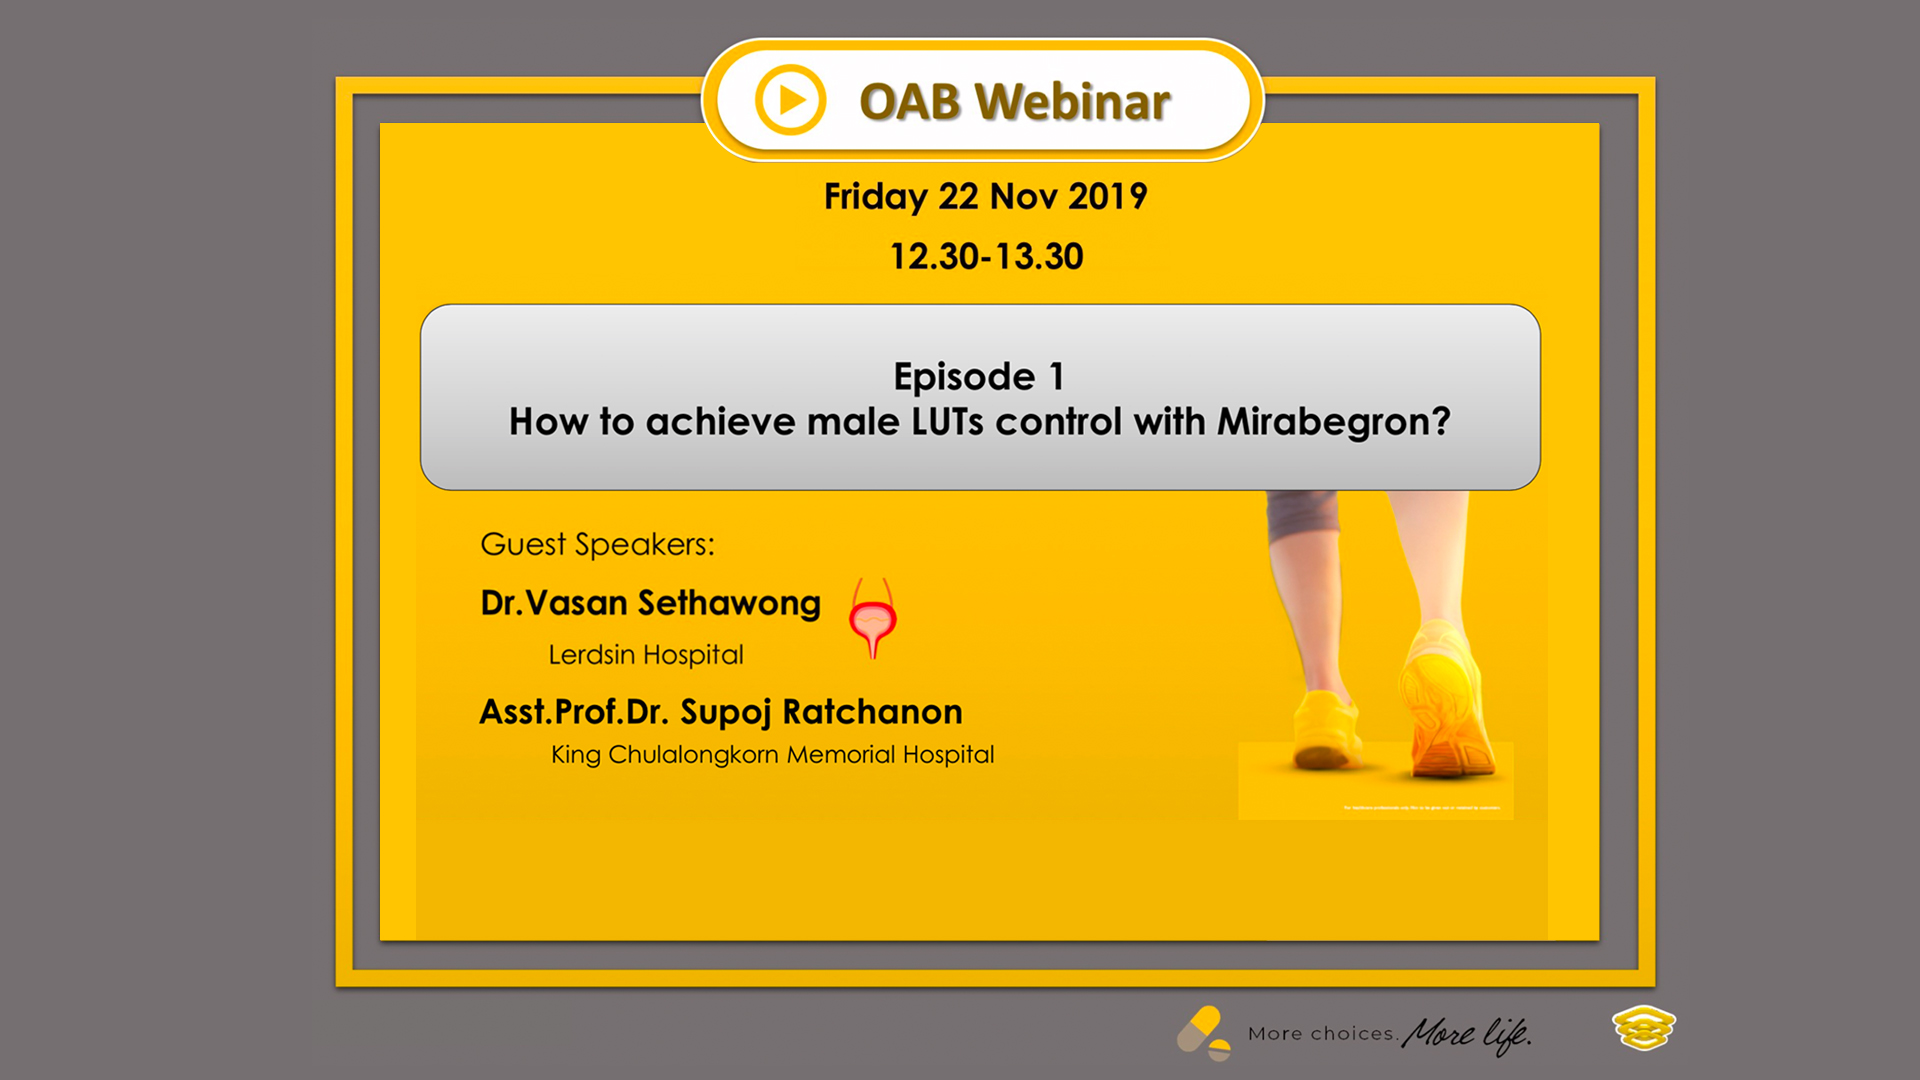 ชมย้อนหลัง OAB Webinar | How to achieve male LUTs control with Mirabegron